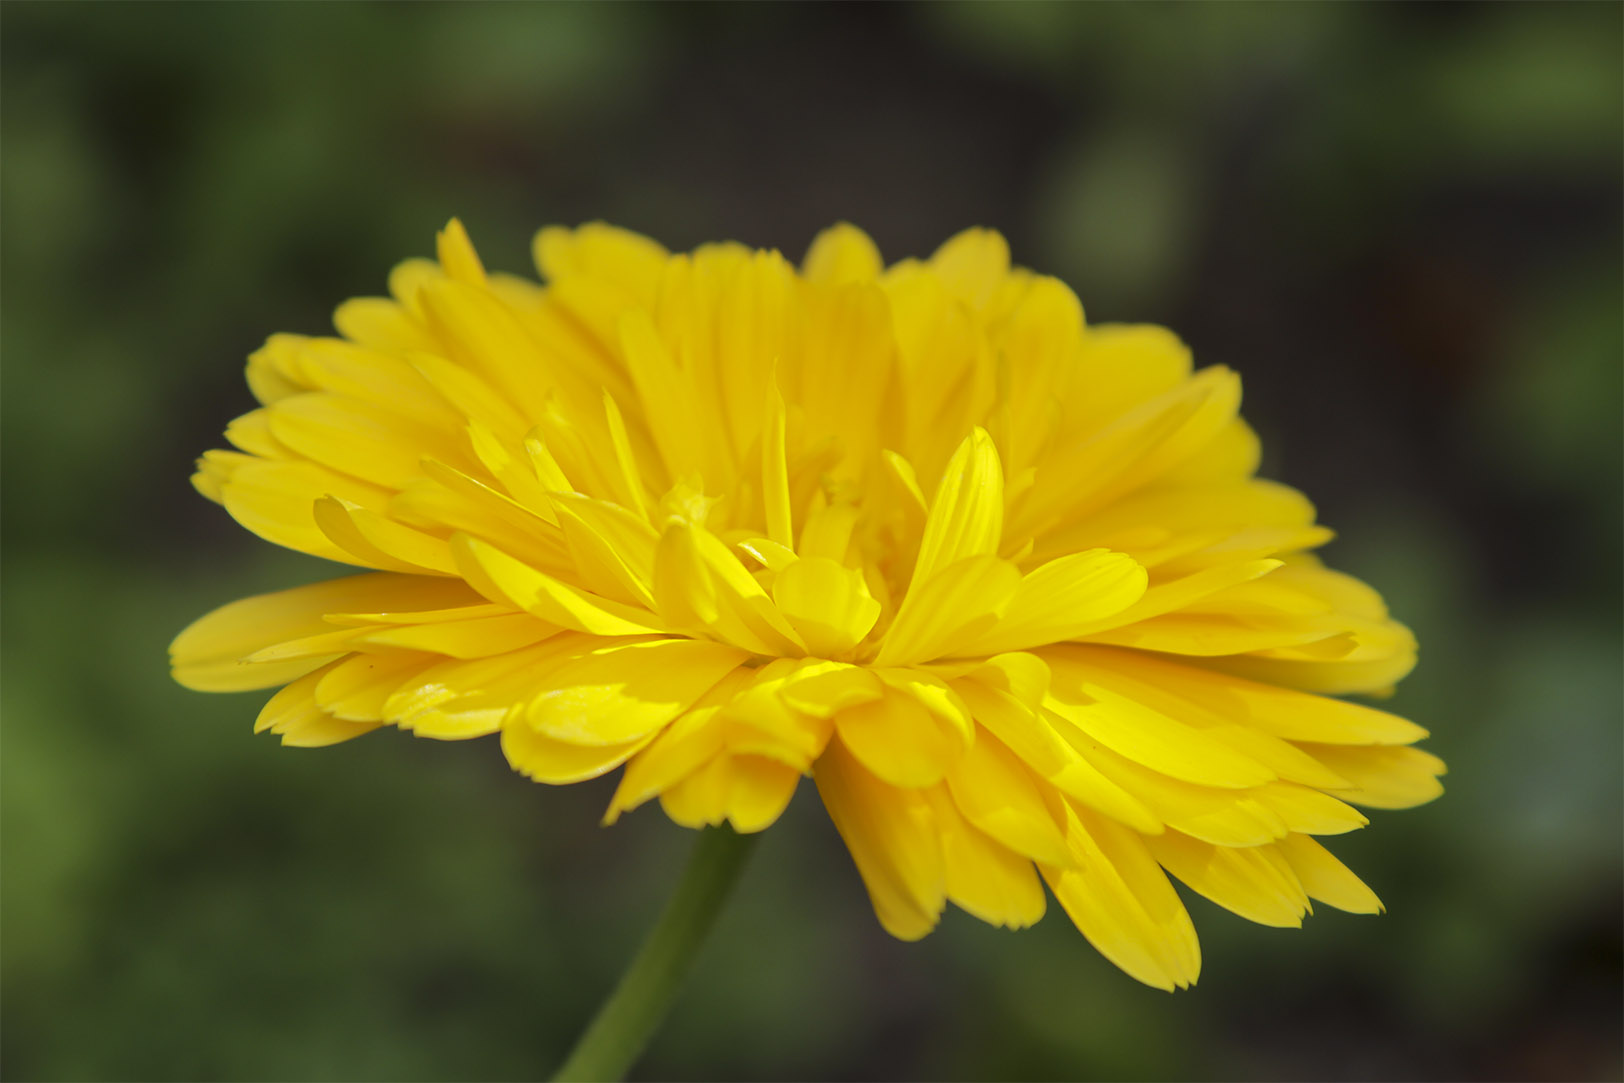 Our skin can benefit immensely from the healing action of calendula.